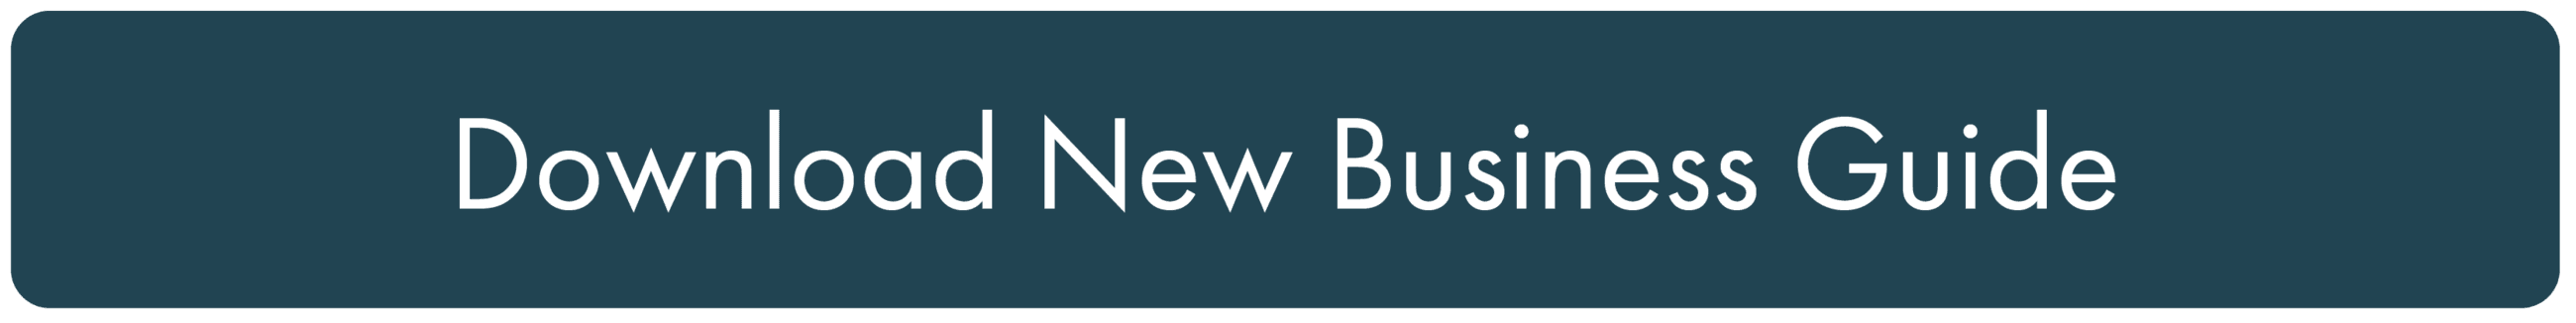 Download New Business Guide-15 Opens in new window